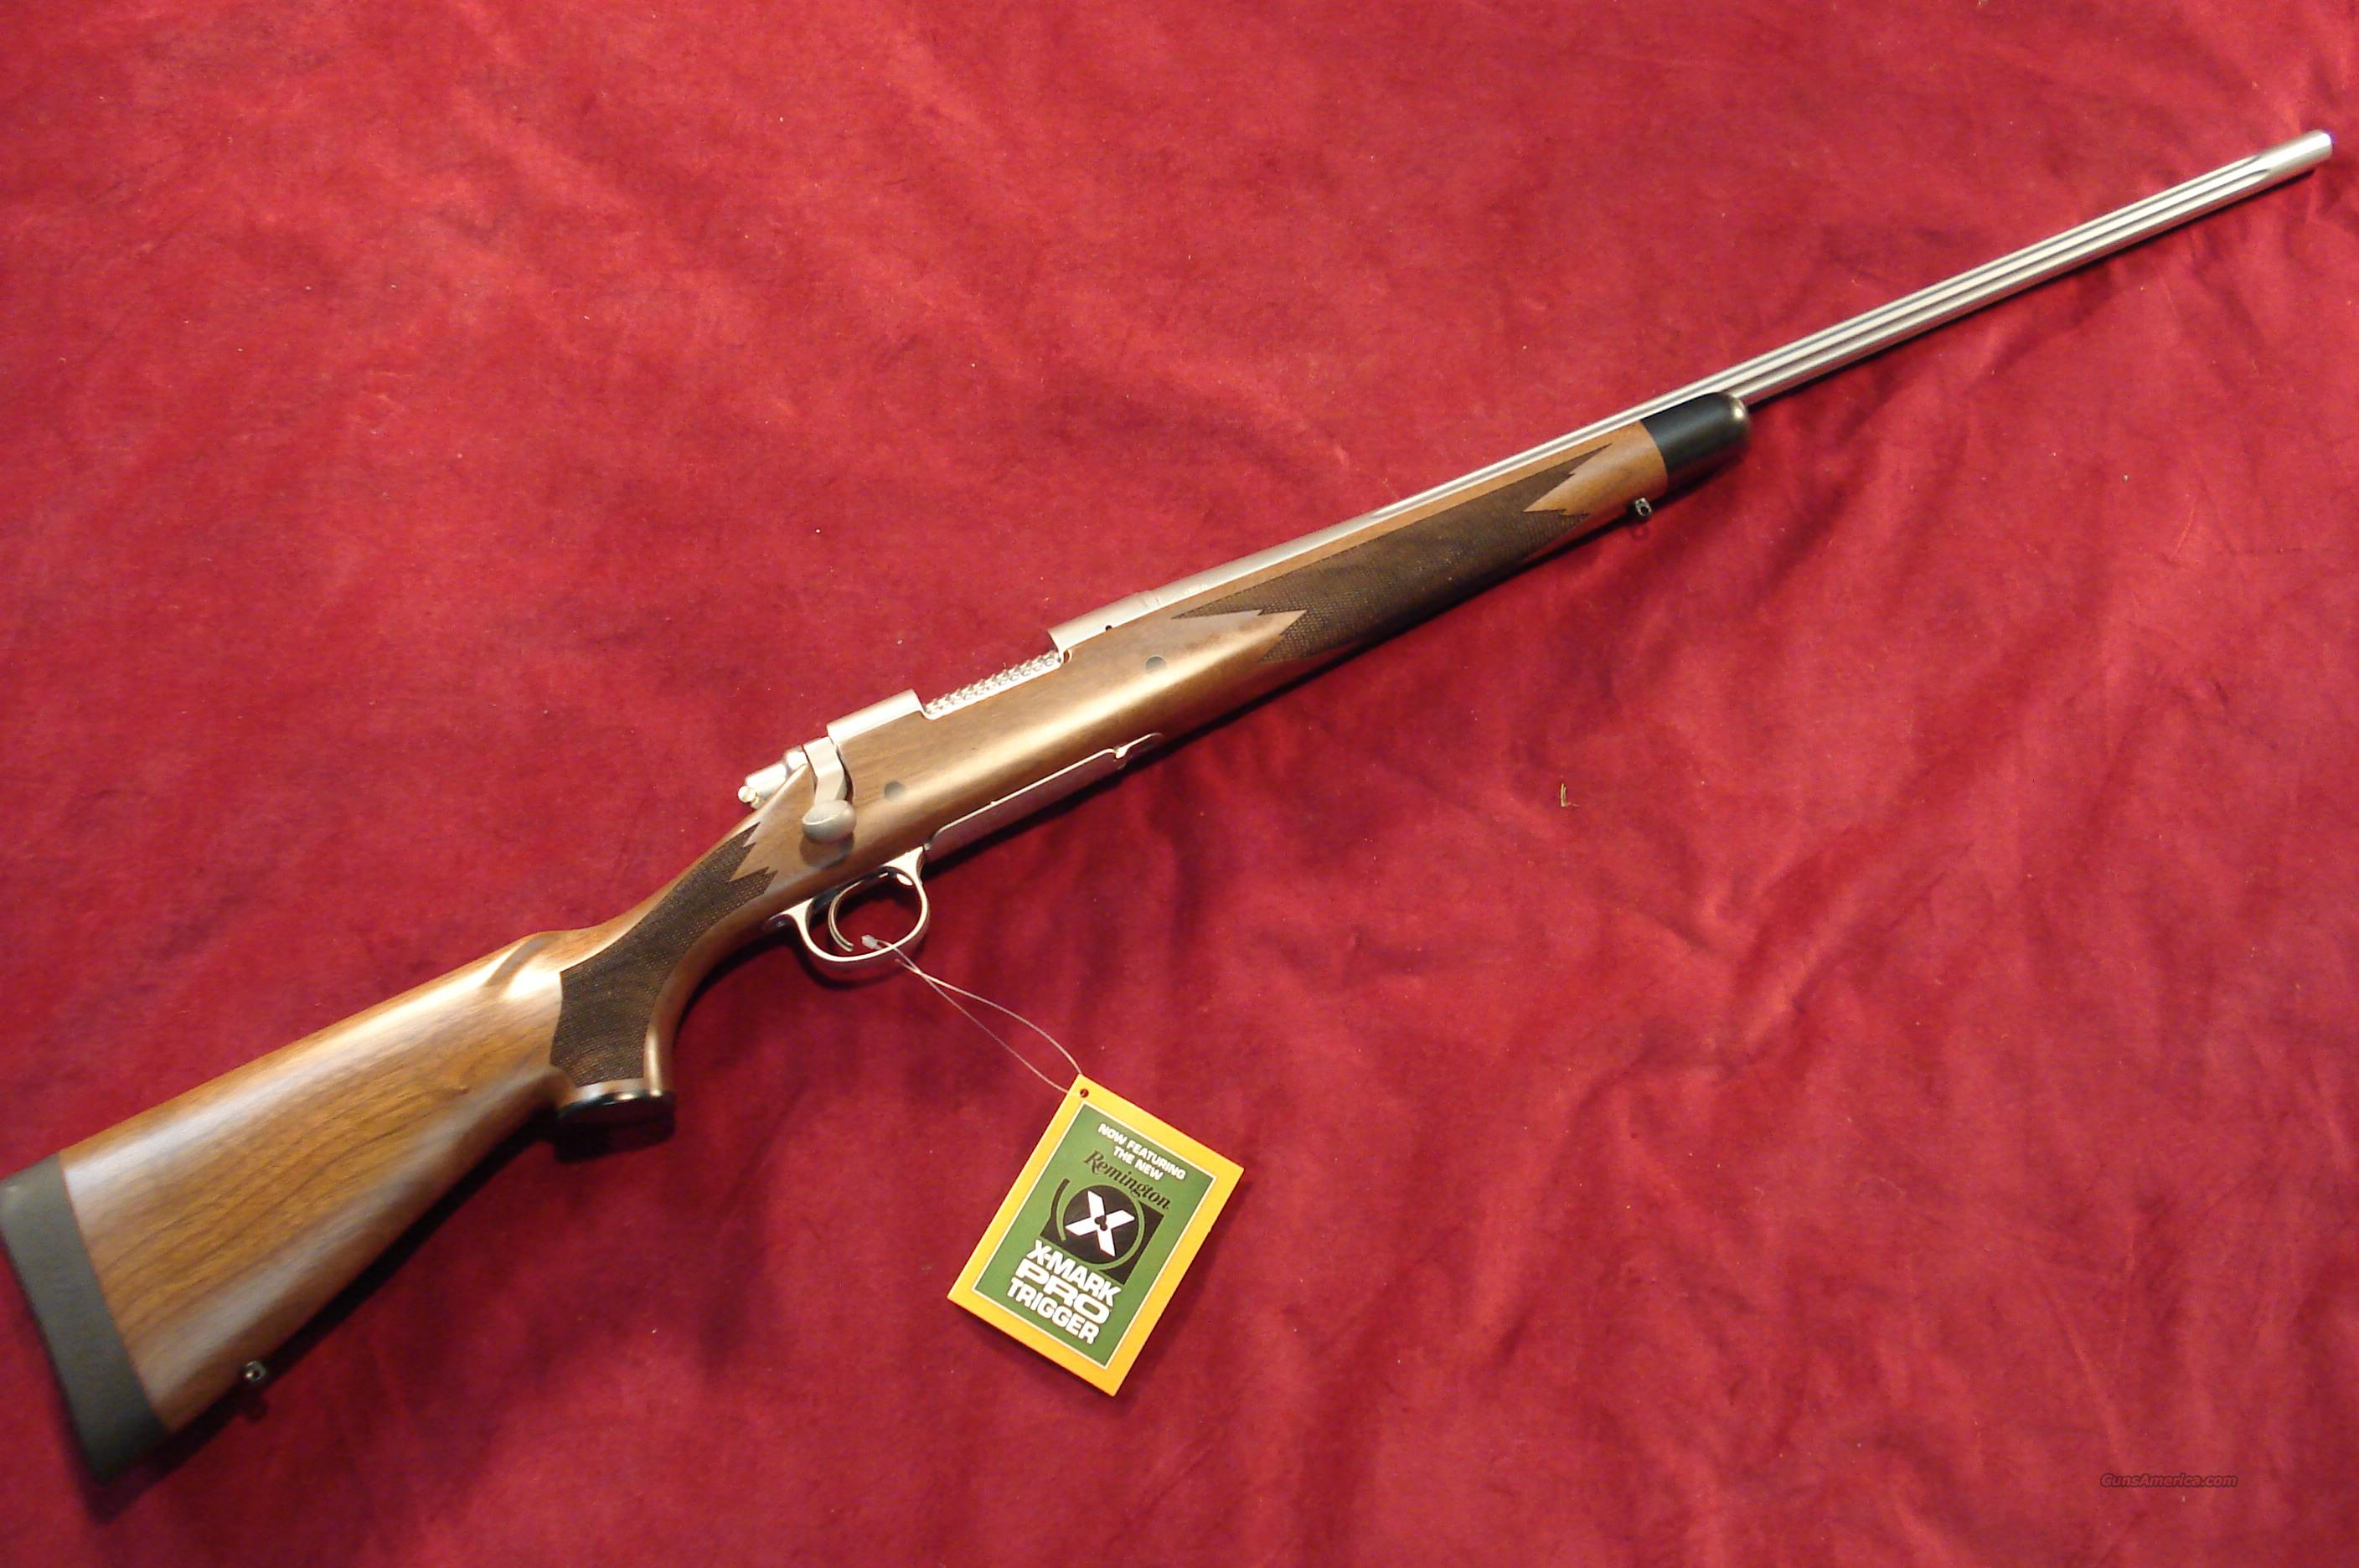 REMINGTON 700 CDL STAINLESS LIMITED ED. 260 REMINGTON     Guns > Rifles > Remington Rifles - Modern > Model 700 > Sporting